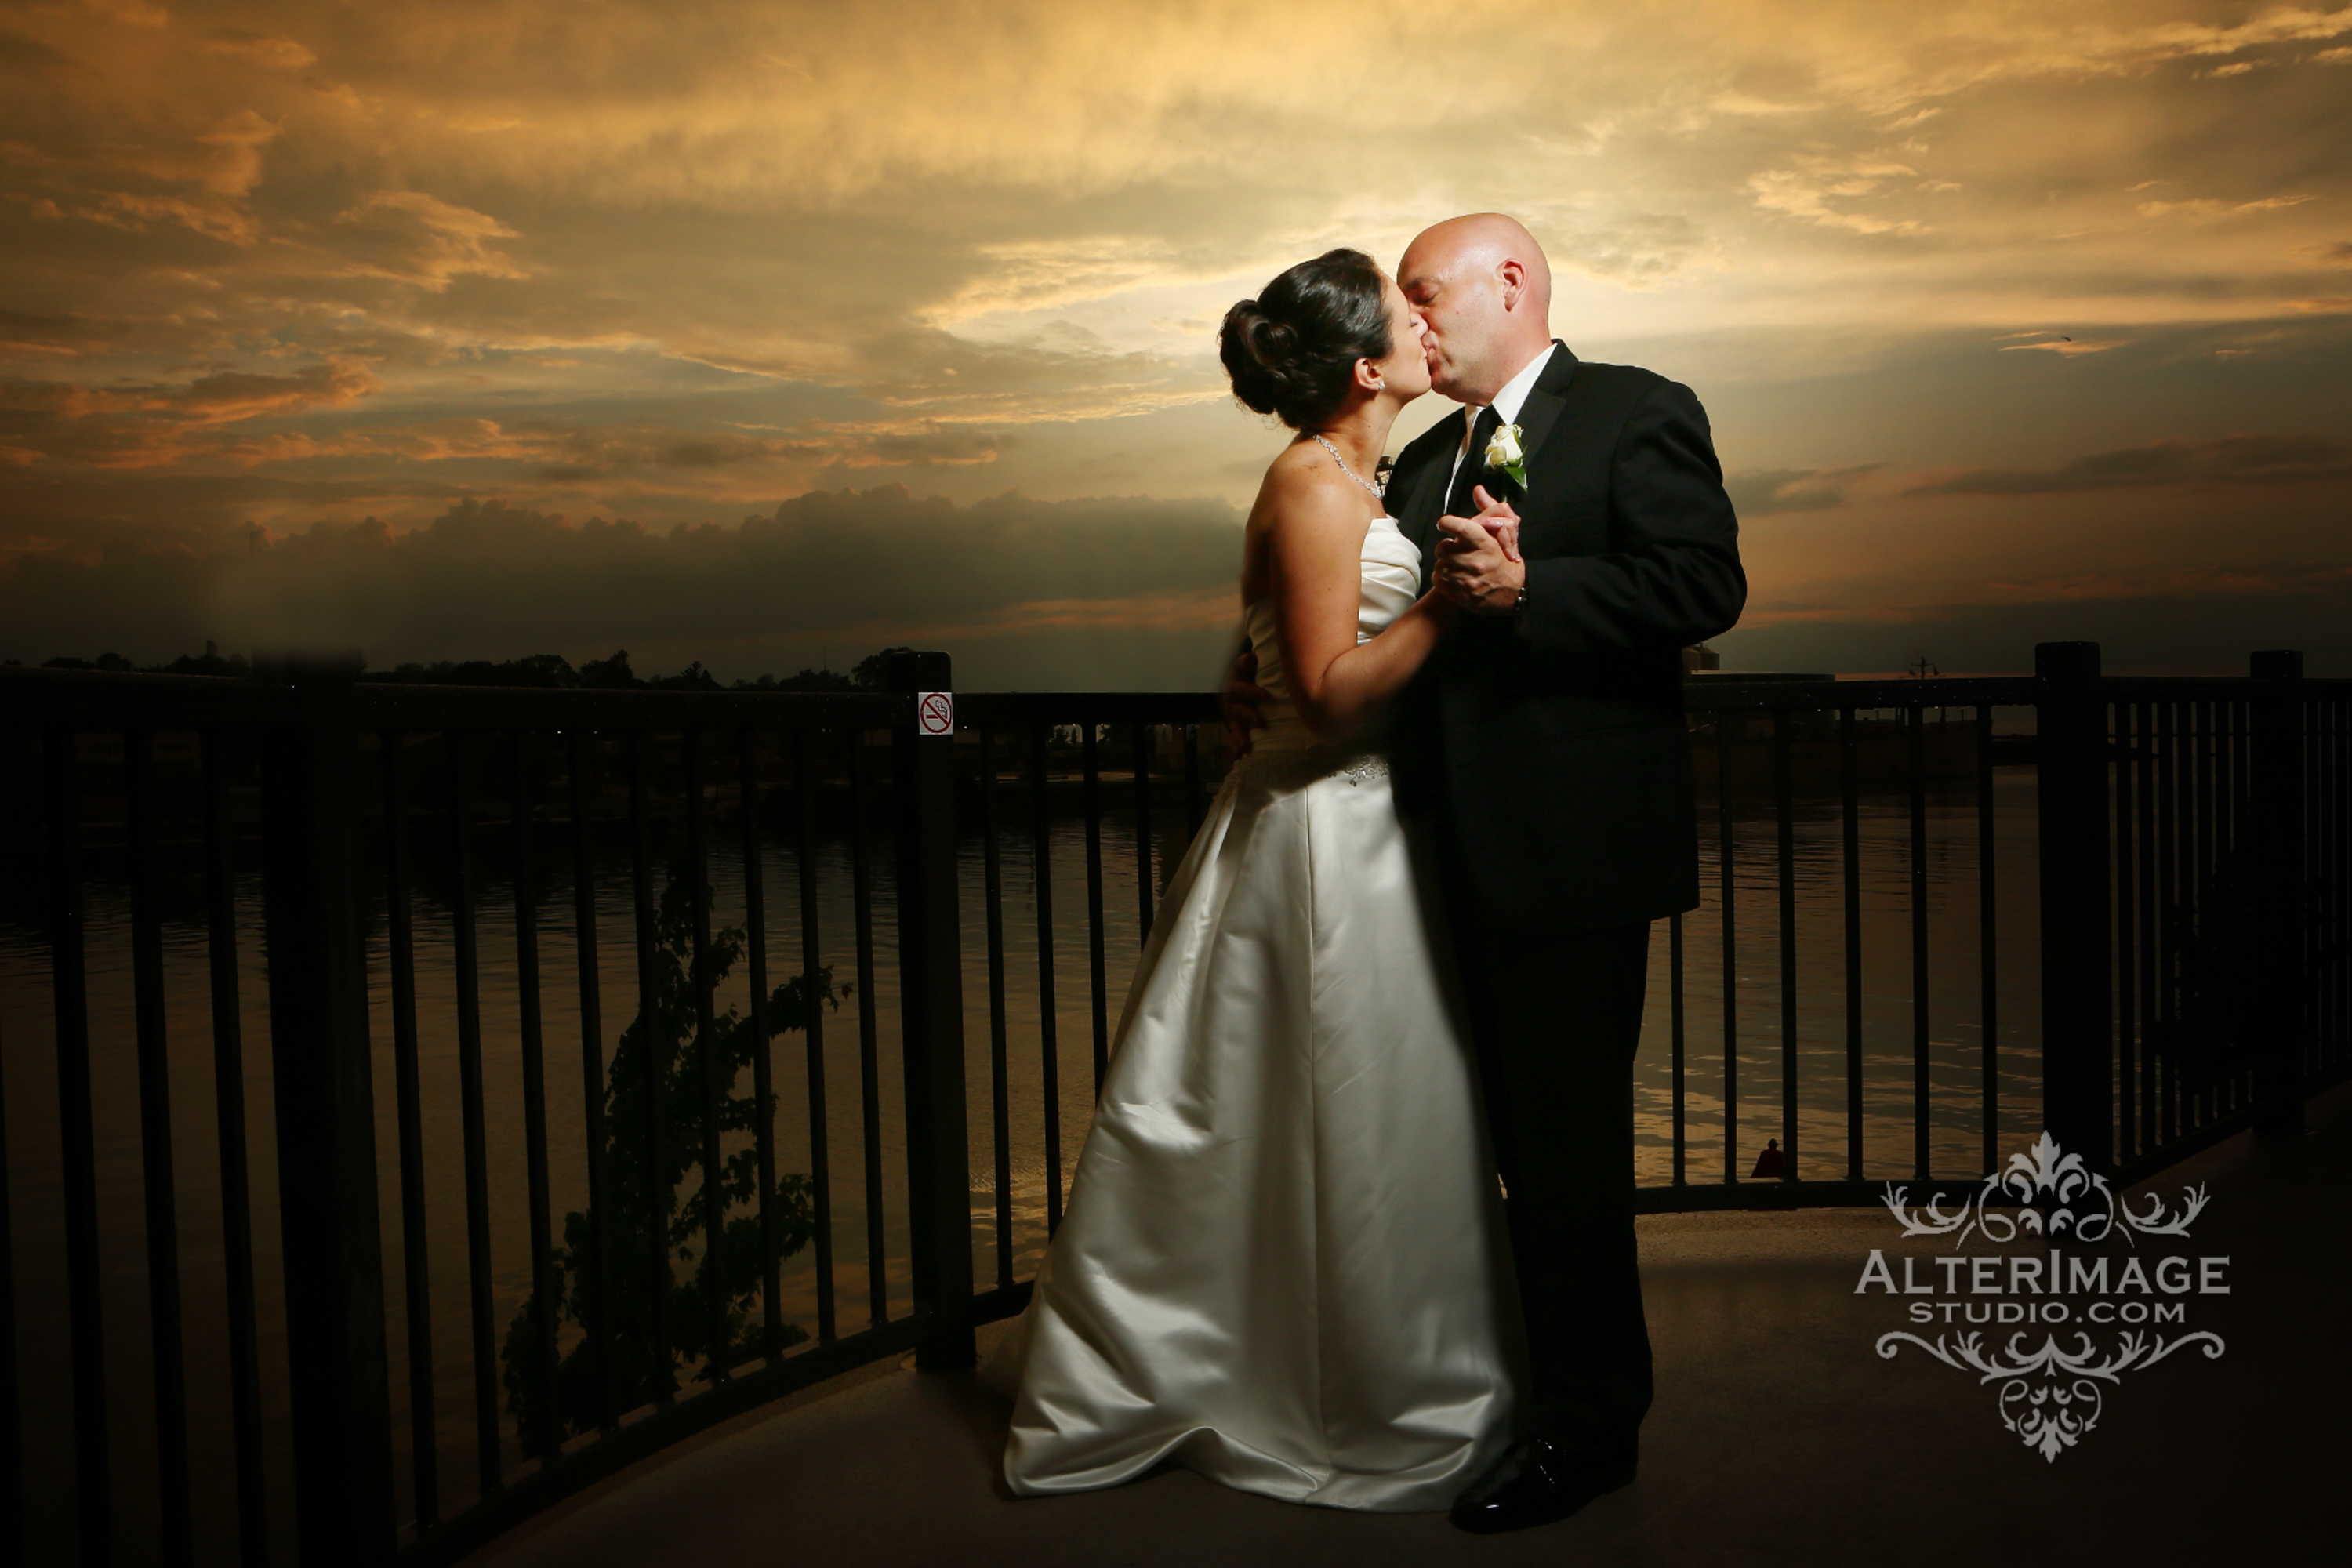 Syracuse wedding venues AlterImage fine art Wedding photography